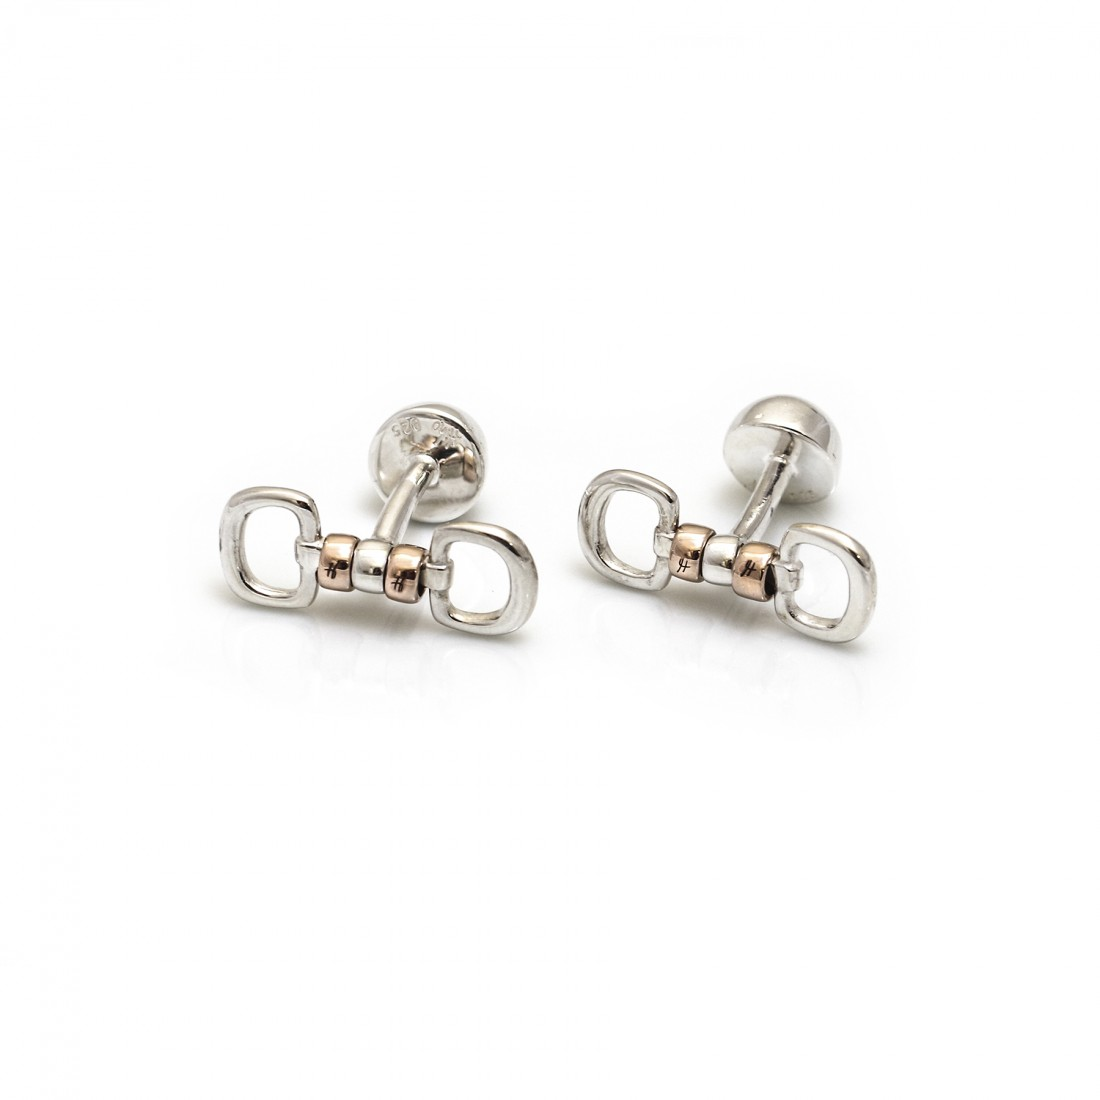 Exclusive Sterling Silver & 9ct Rose Gold Cherry Roller Cufflinks